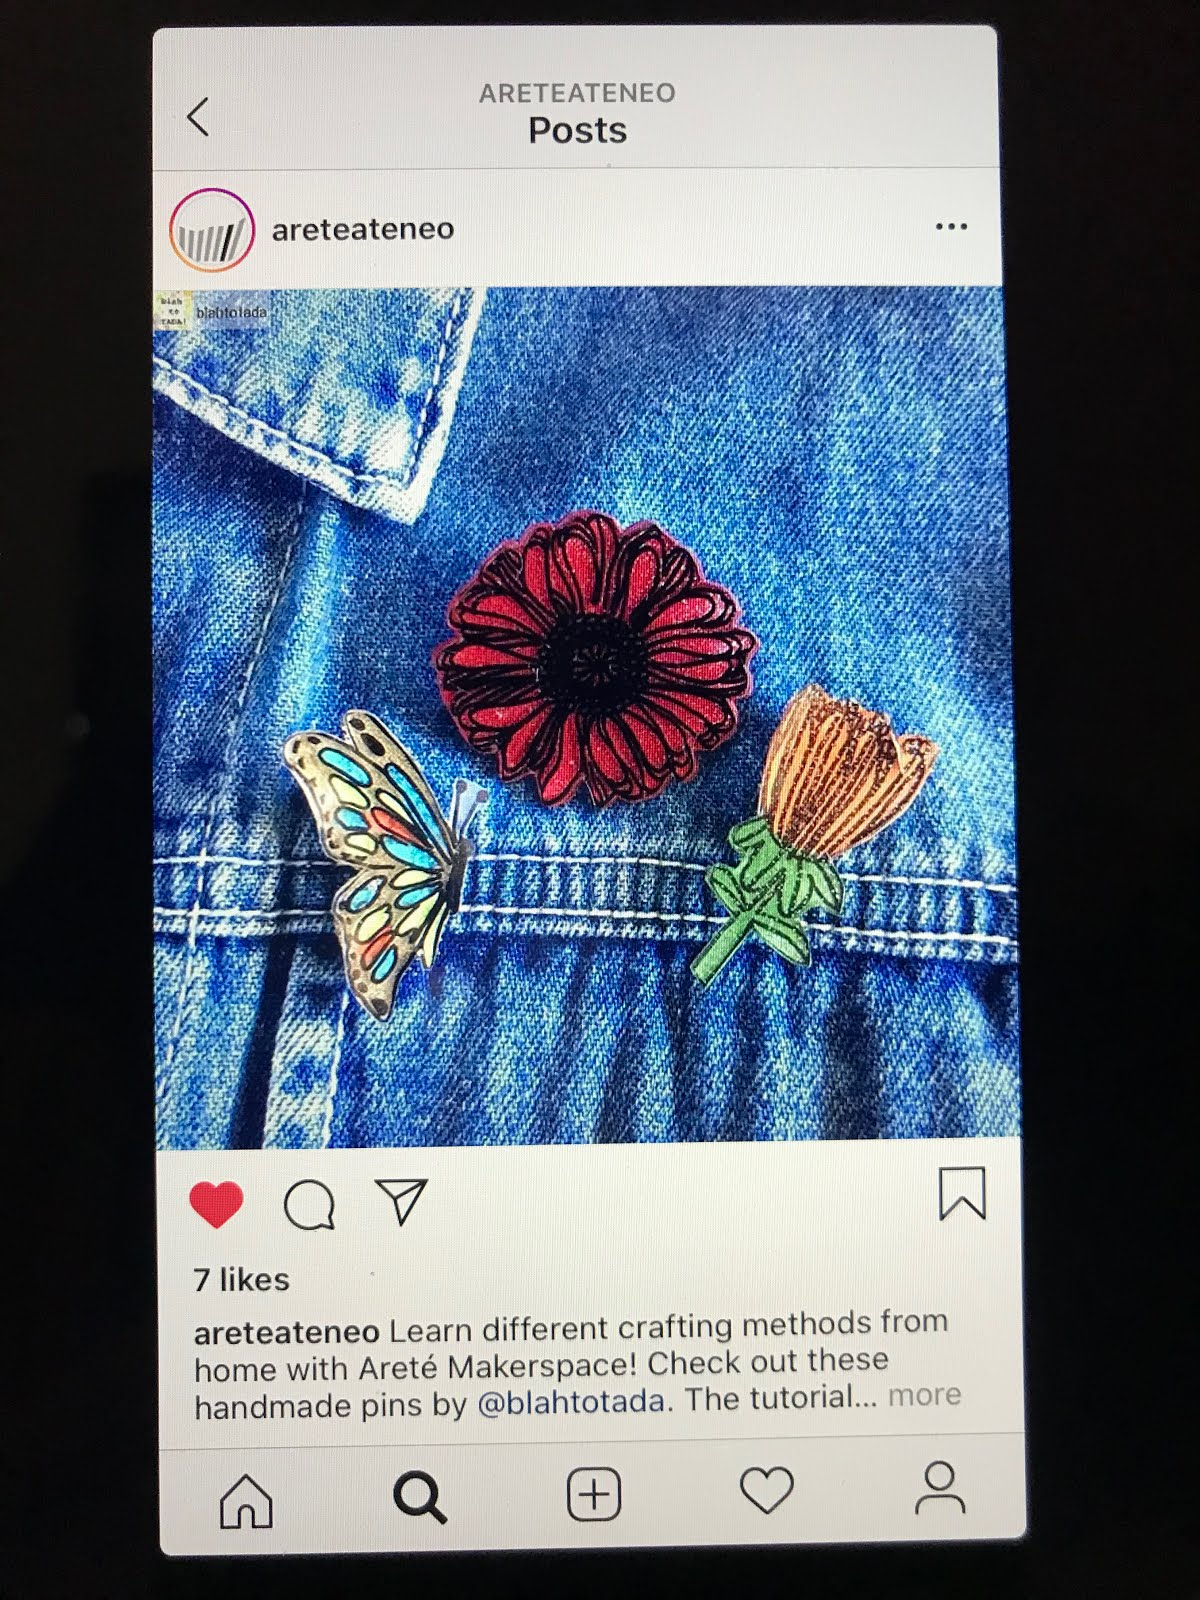 My Shrinky Dinks flower and butterfly pins are on the Arete Ateneo Instagram feed!